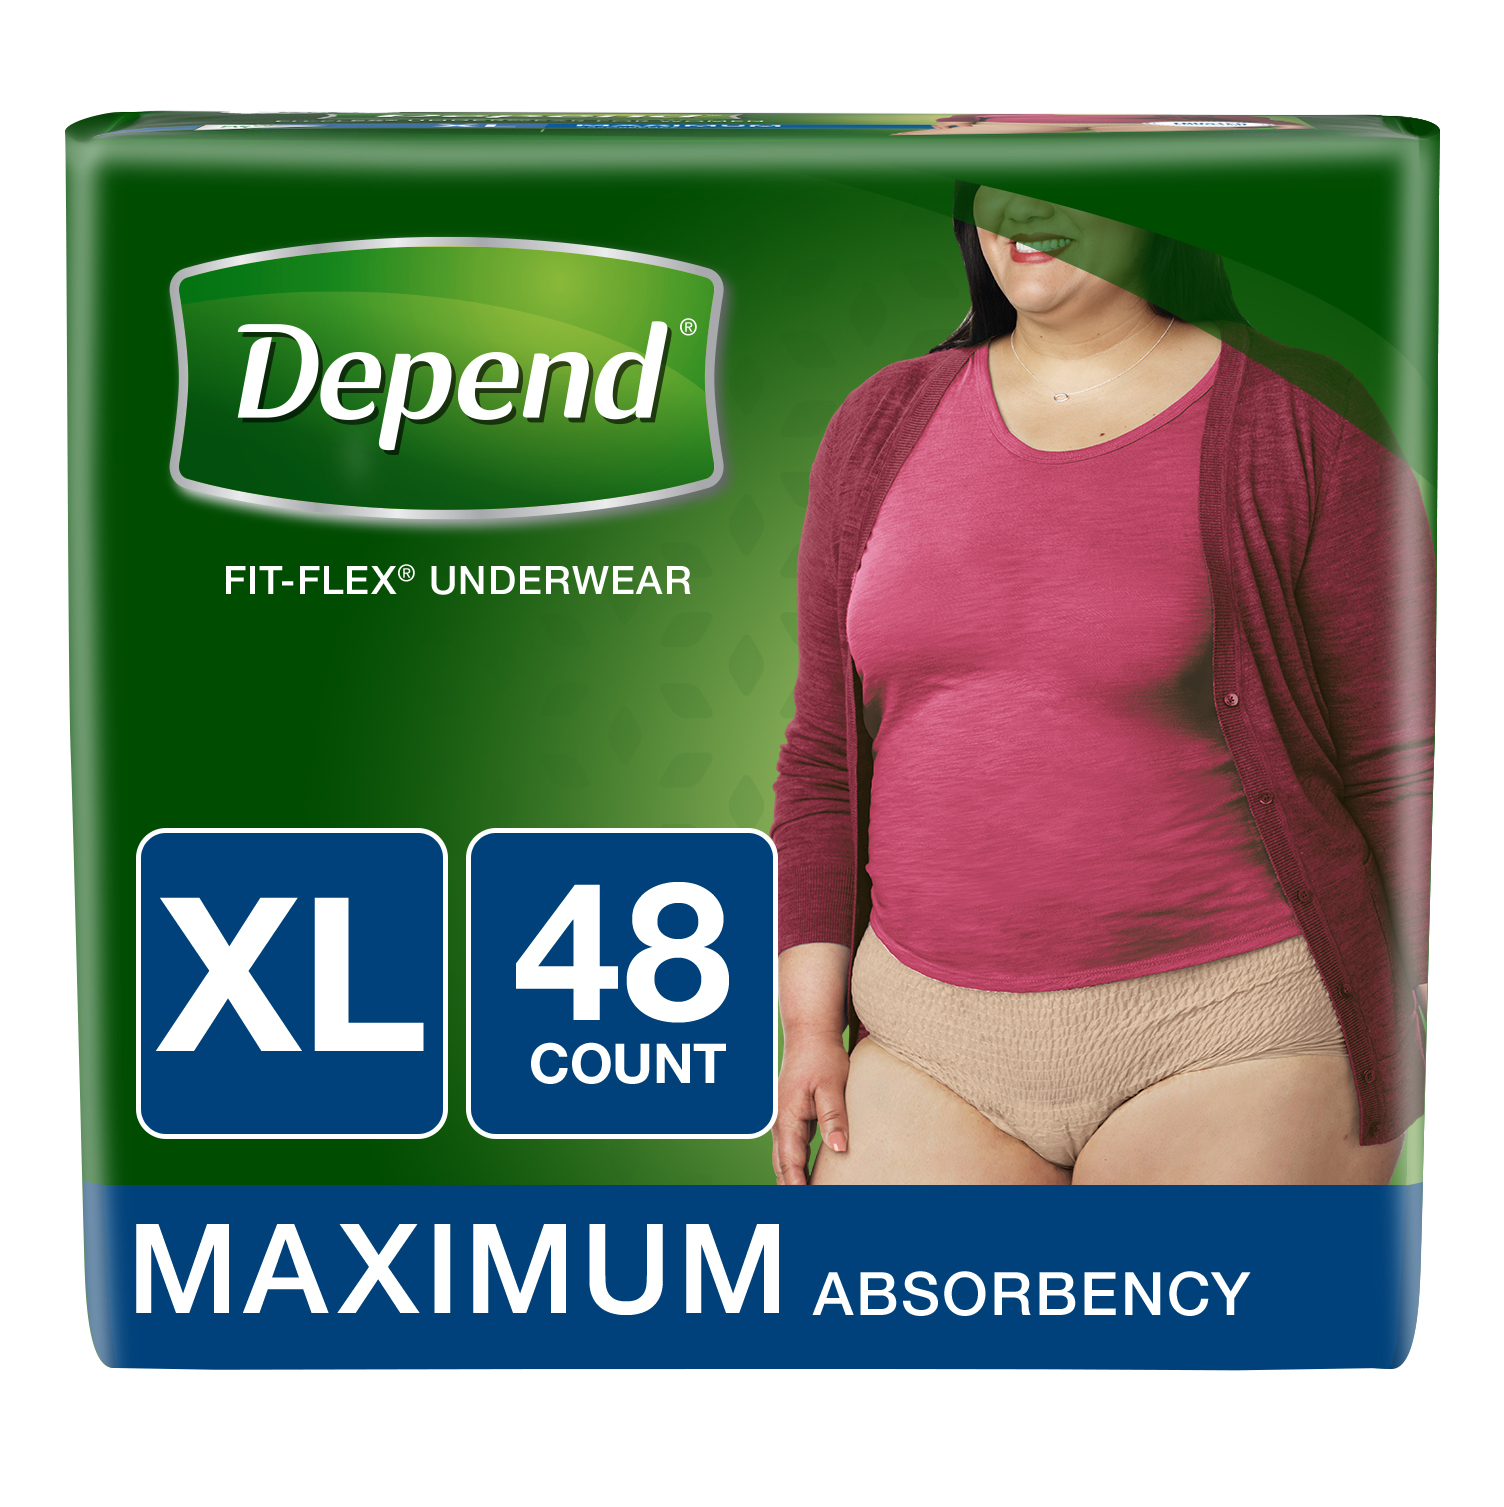 Depend FIT-FLEX Incontinence Underwear for Women, Maximum Absorbency, XL, 48 Ct